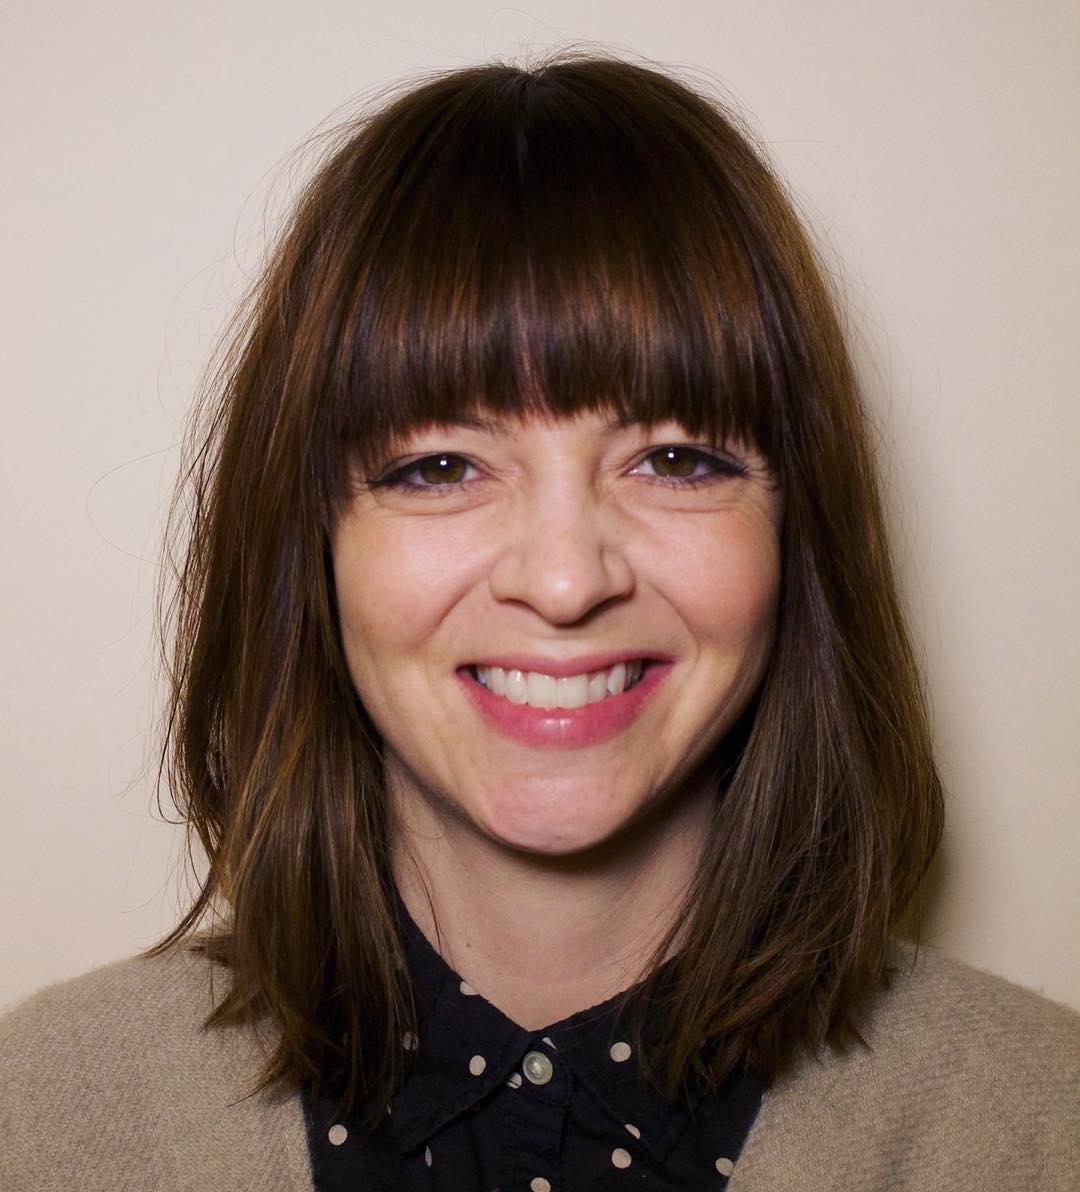 Brunette Textured Lob with Seamless Layers and Fringe Bangs Medium Length Hairstyle